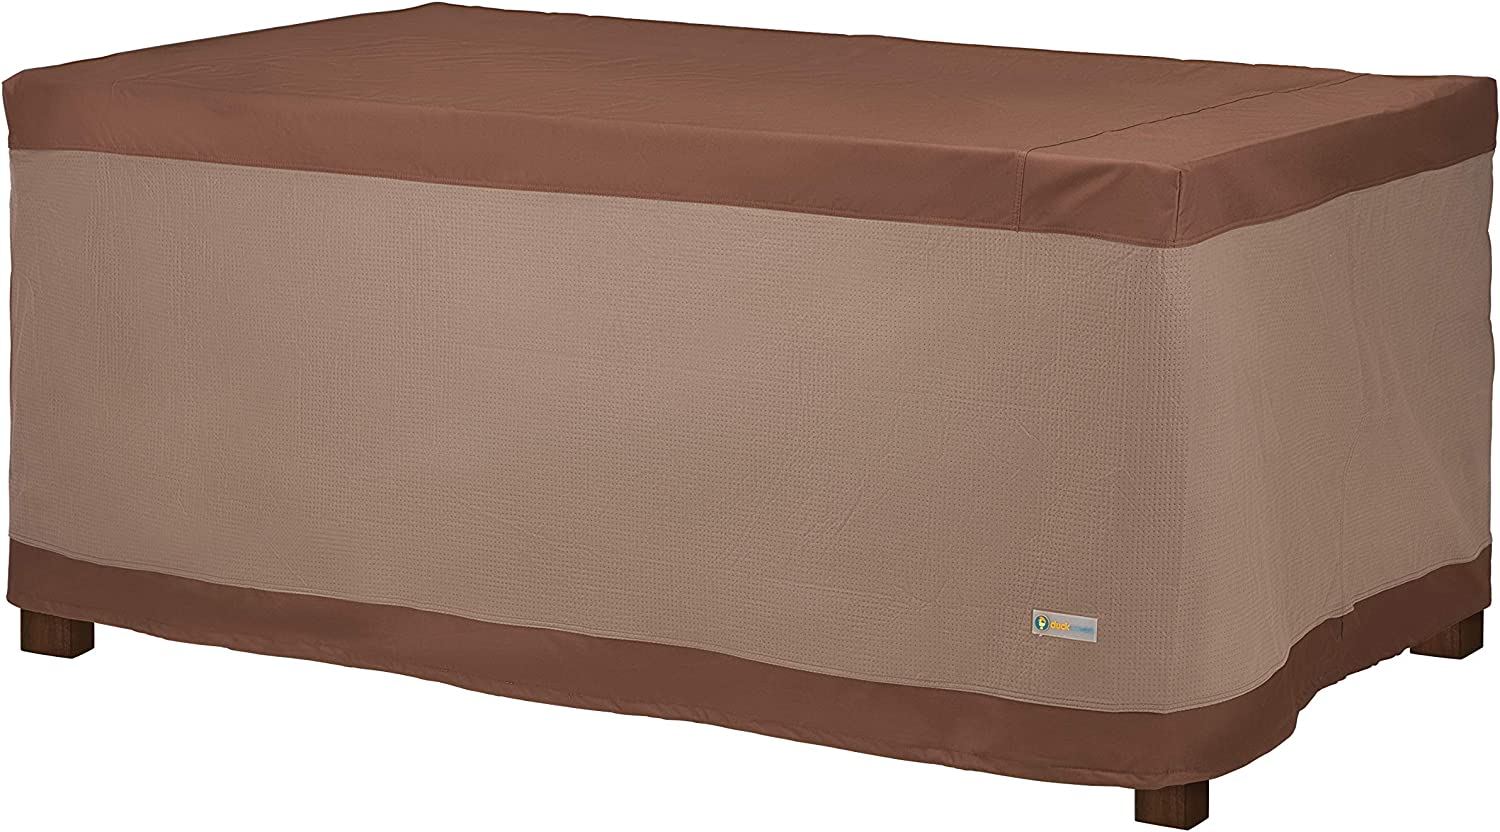 "Duck Covers URT744632 Ultimate Rectangular Table Cover 72"" W, Mocha Cappuccino"